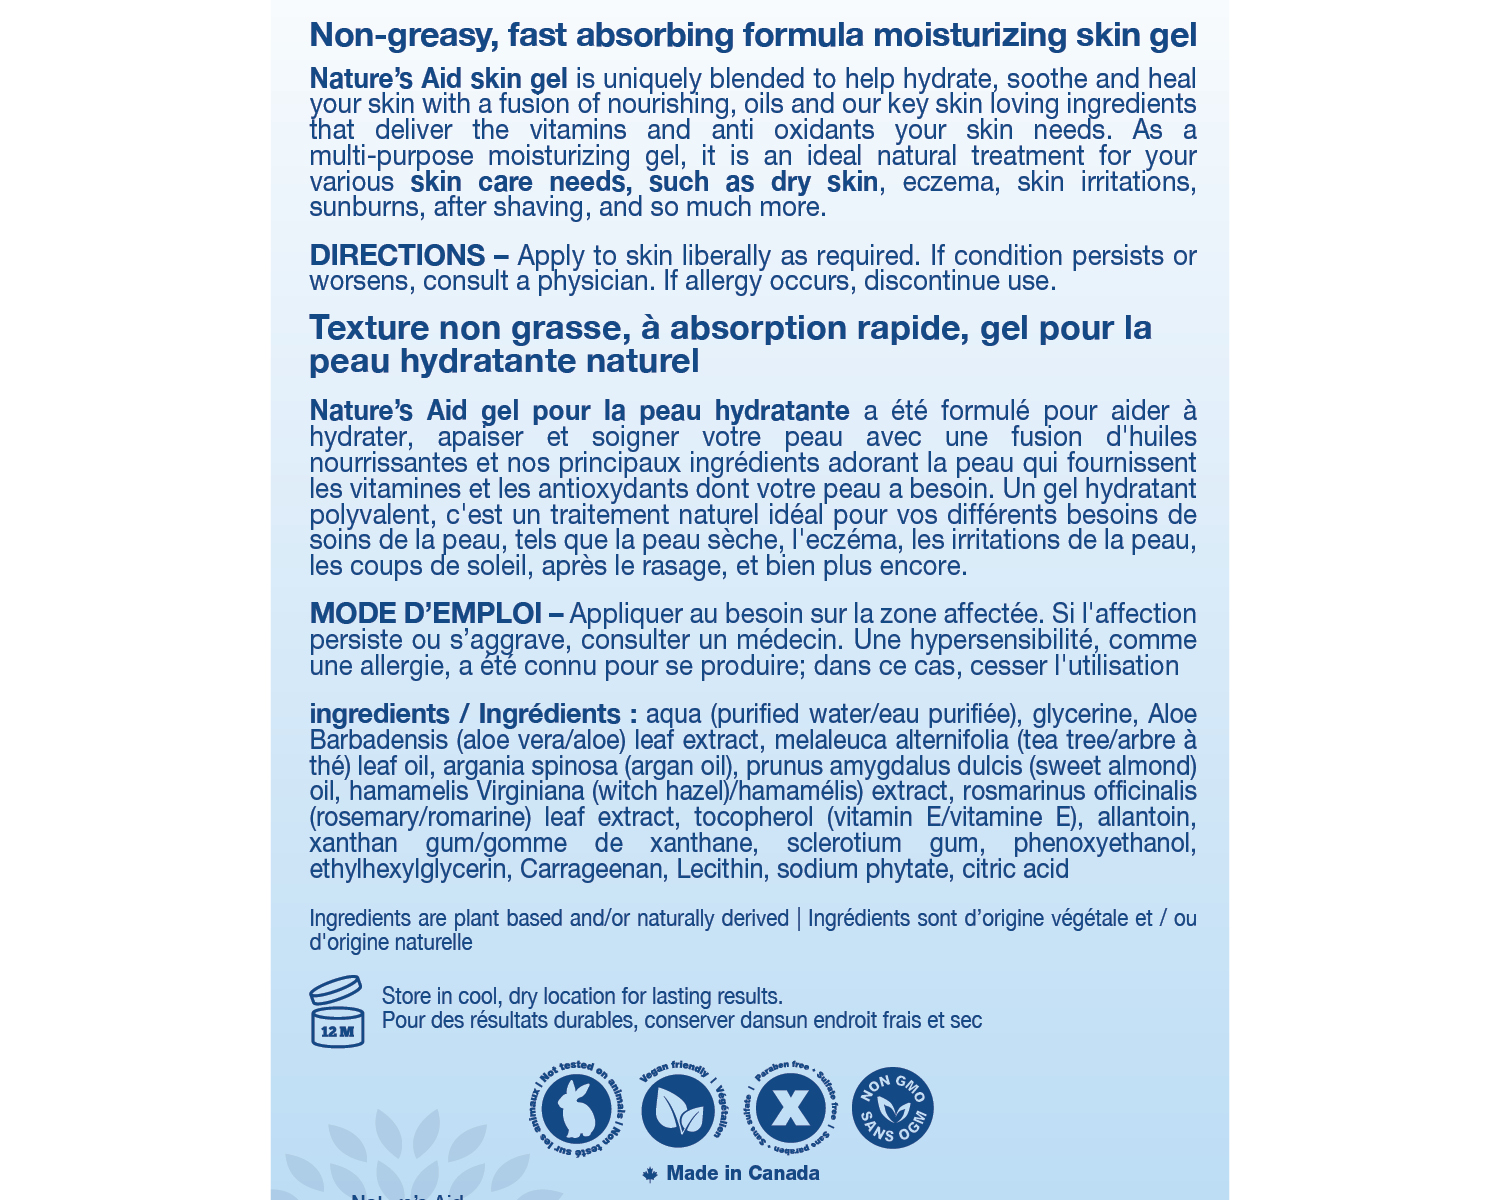 Moisturizing Skin Gel Back of Label